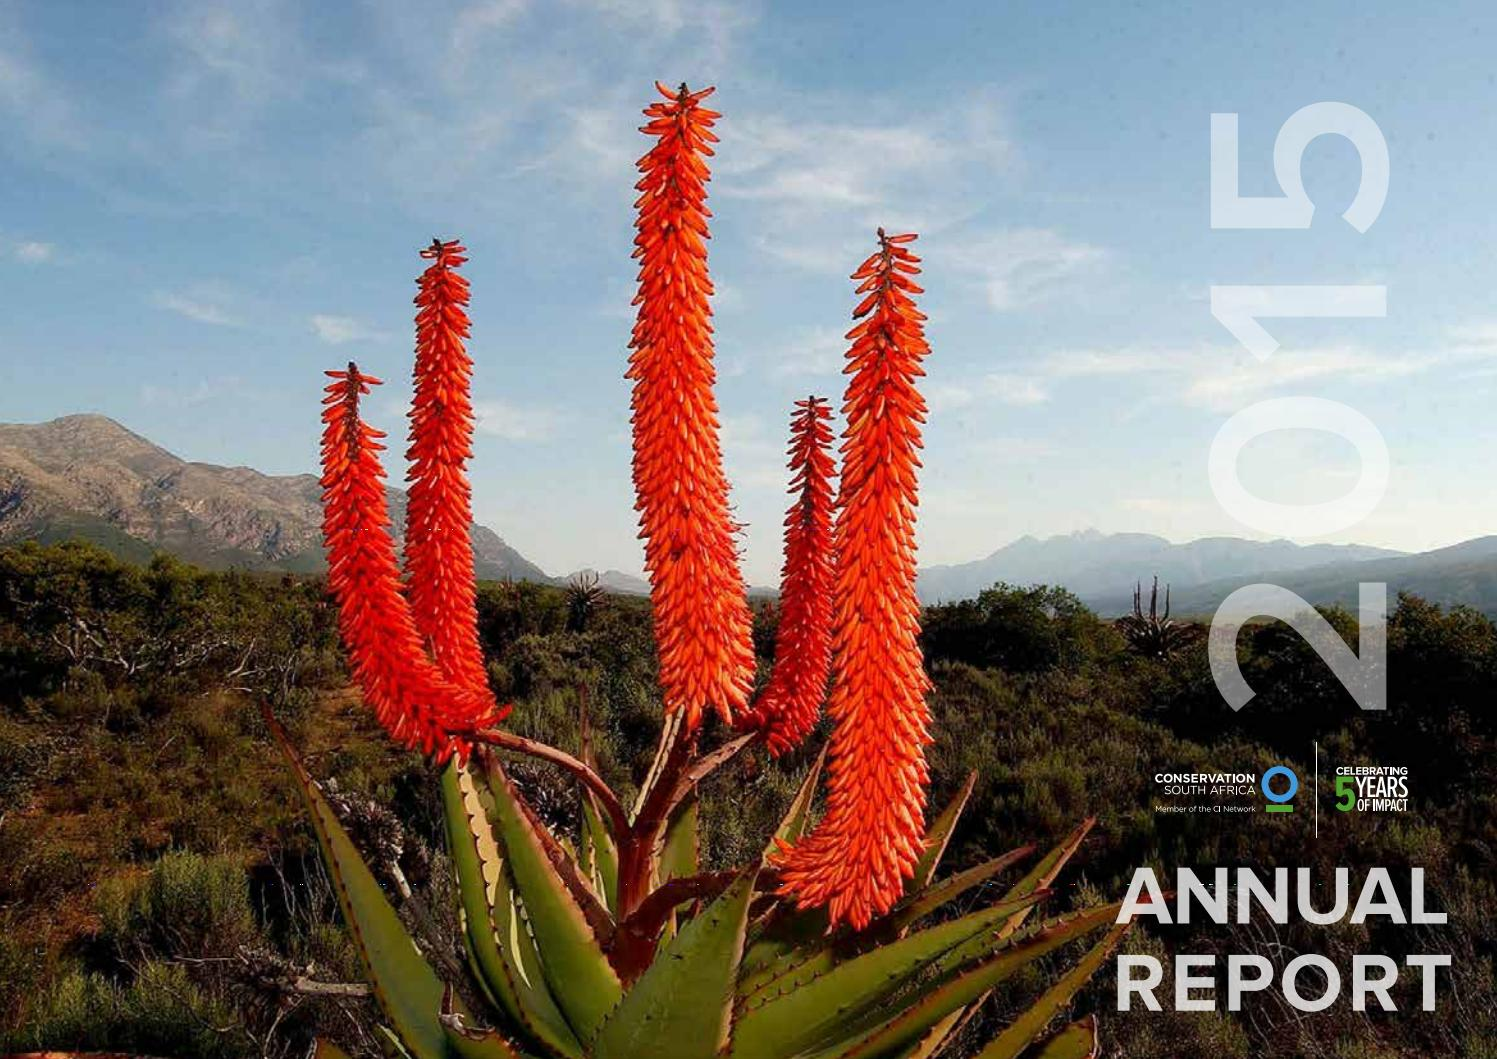 Conservation south africa annual report 2015 by Tessa